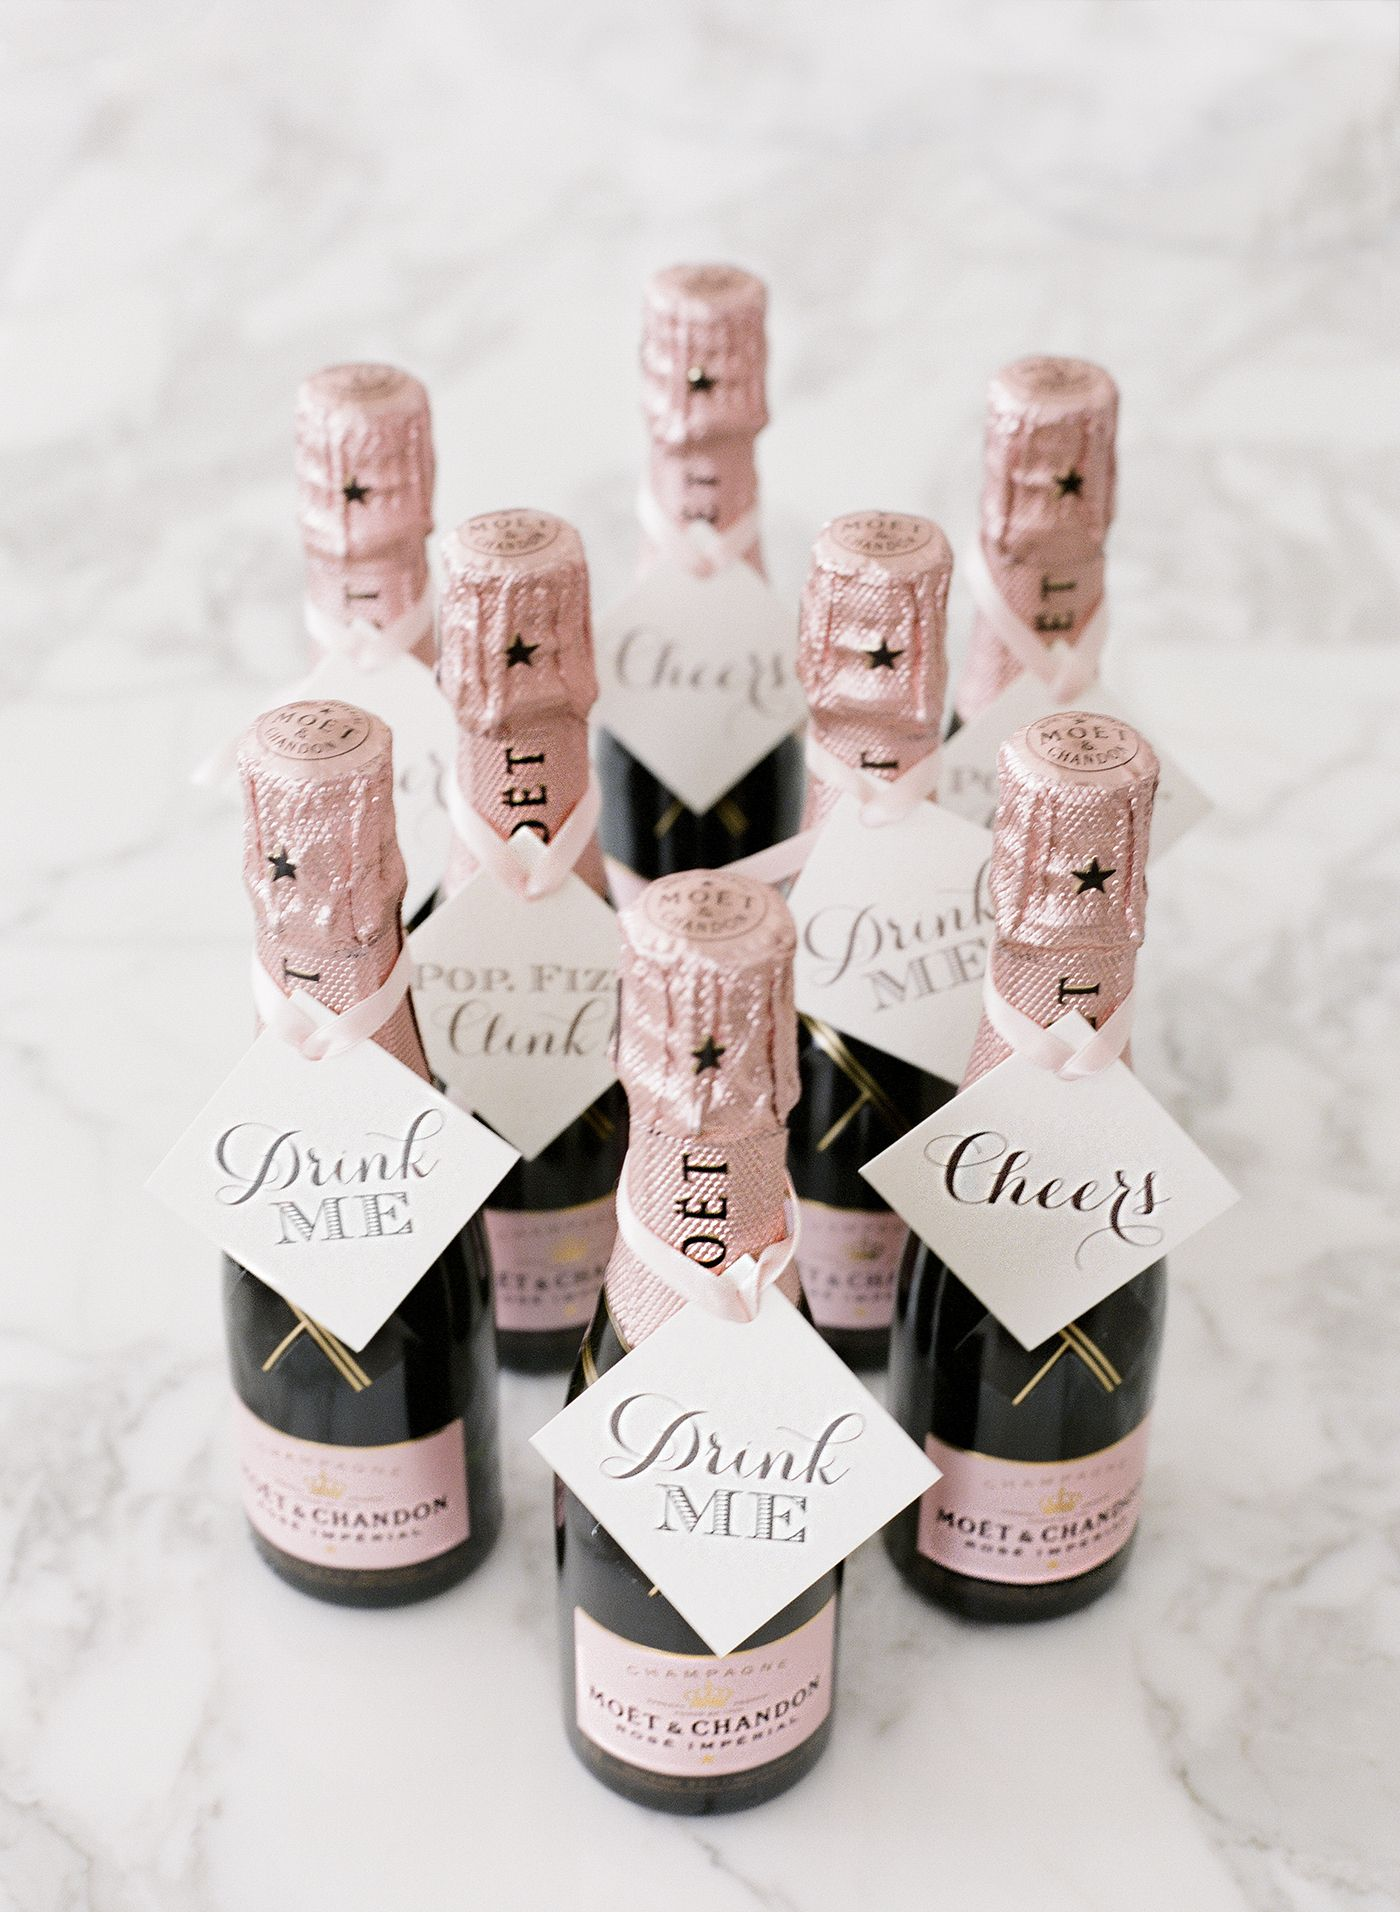 Moet mini bottles of champagne  wedding champagne drink tags  Rosemary  Beach Wedding  wedding favors  M Elizabeth Event Planning  Photo by Leslee  Mitchell Moet mini bottles of champagne  wedding champagne drink tags  . Mini Wine Bottle Favors For Weddings. Home Design Ideas